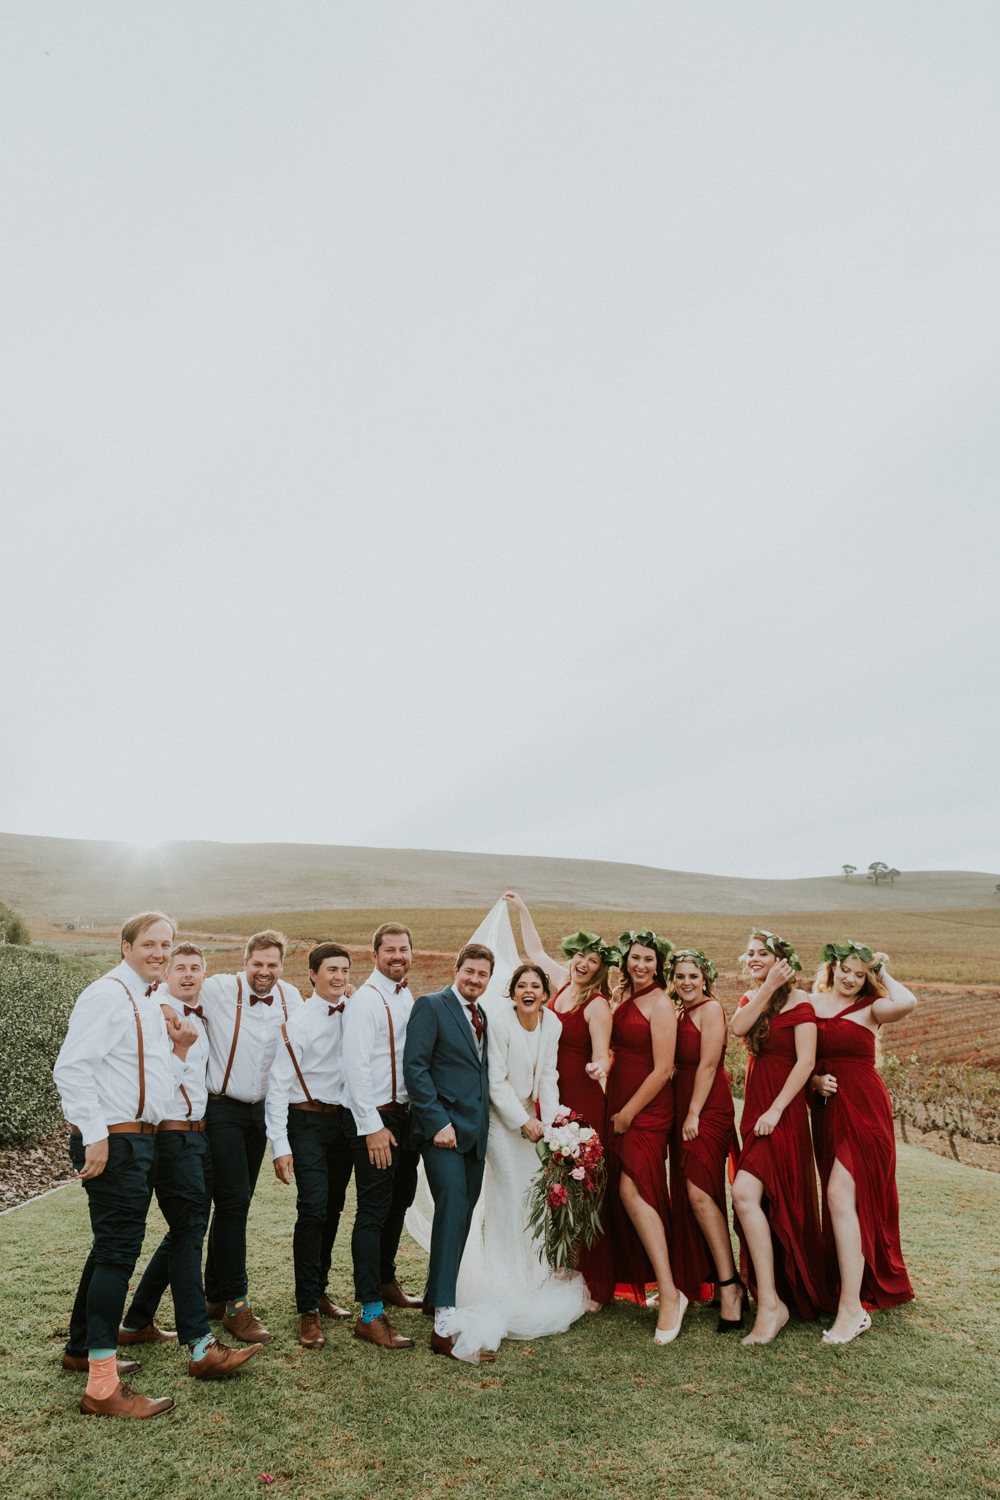 Cape Town Winter Wedding - Bianca Asher Photography-93.jpg